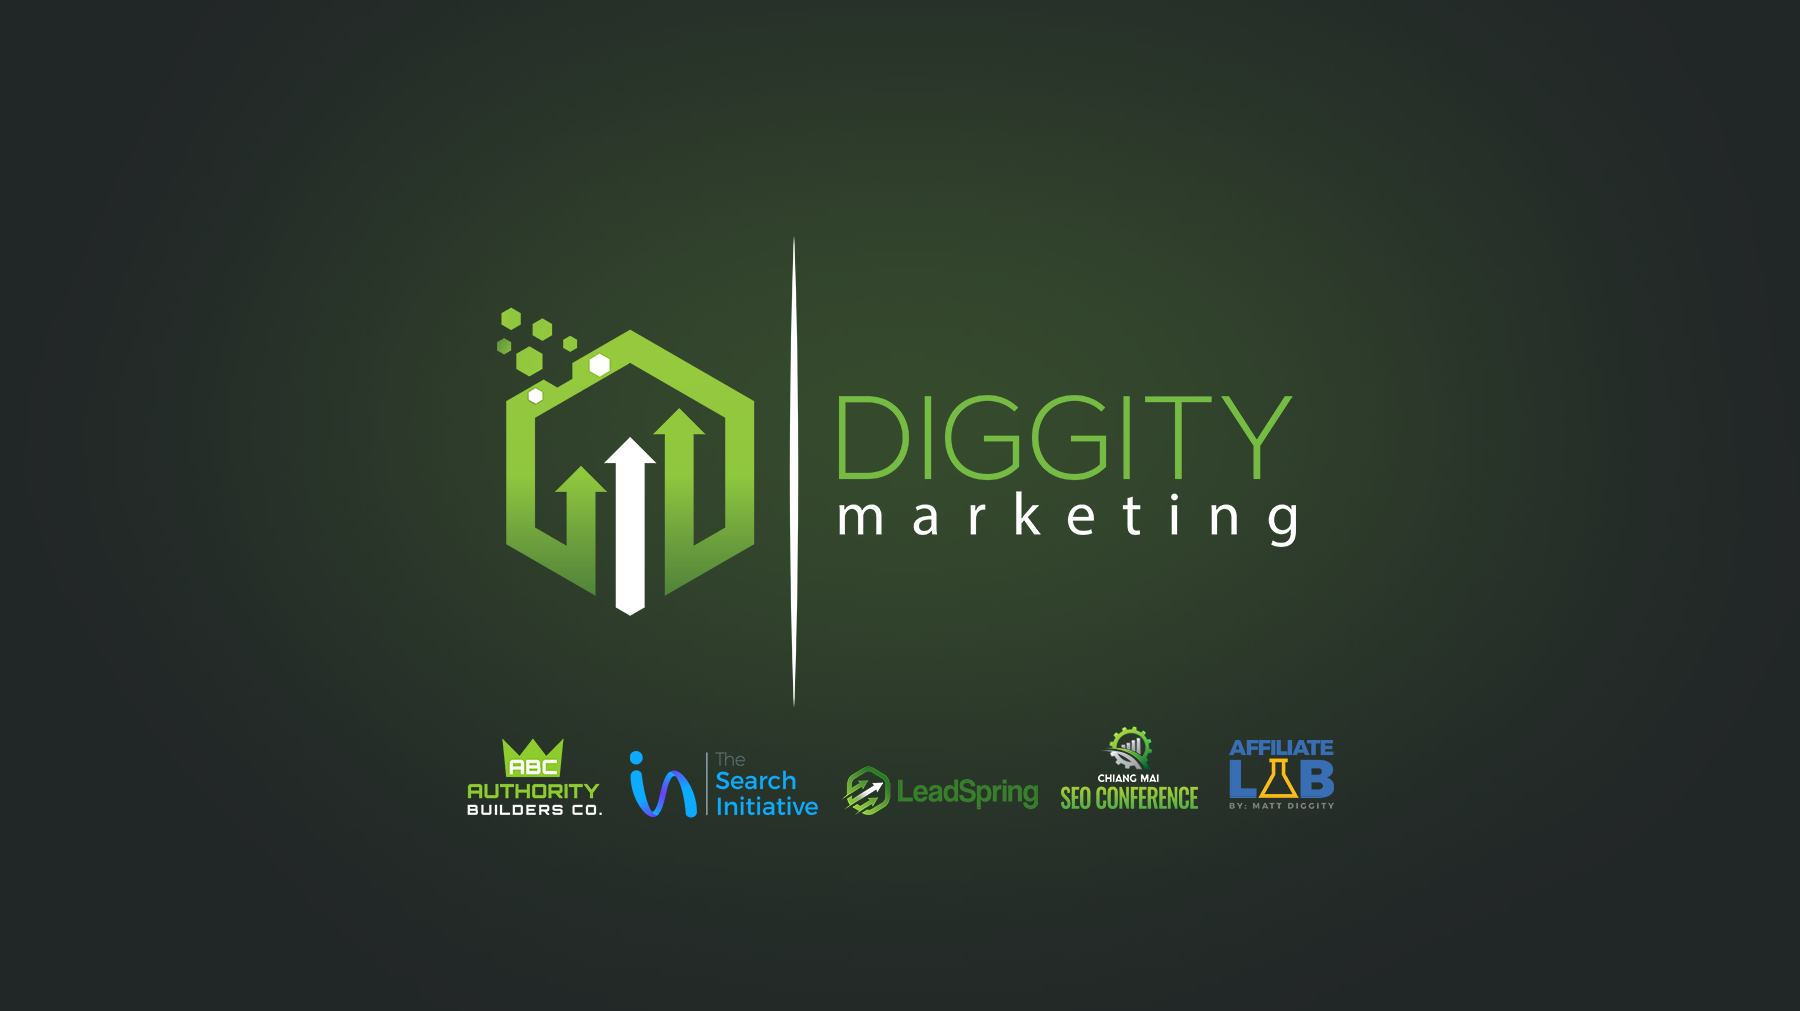 Diggity Marketing Review